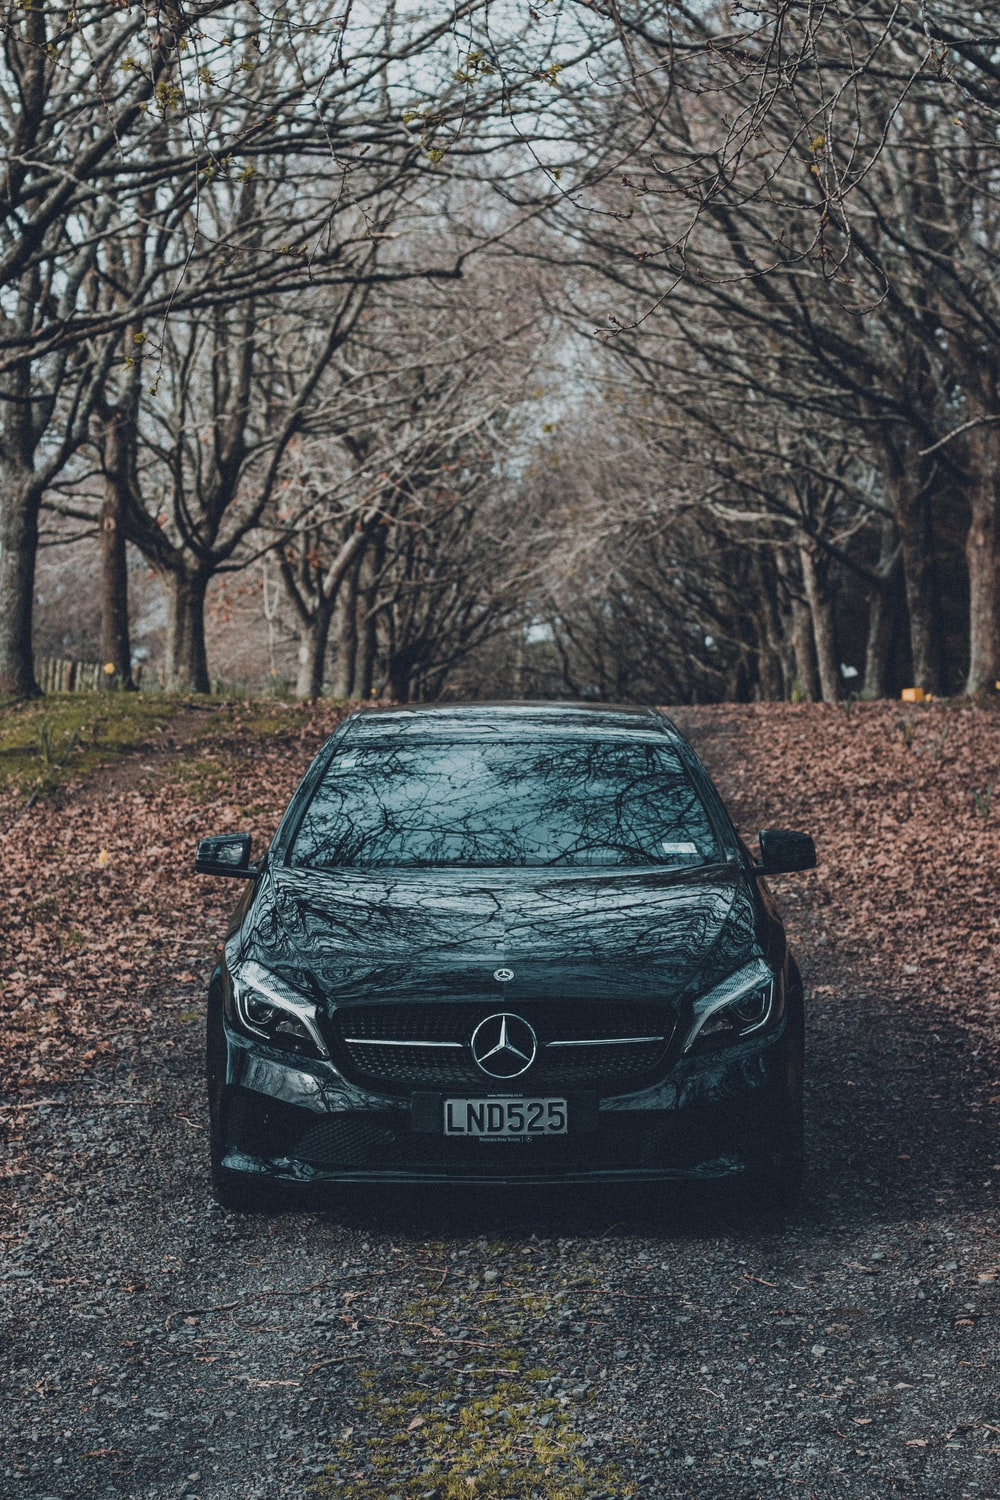 black mercedes benz car parked on brown dirt road near brown bare trees during daytime